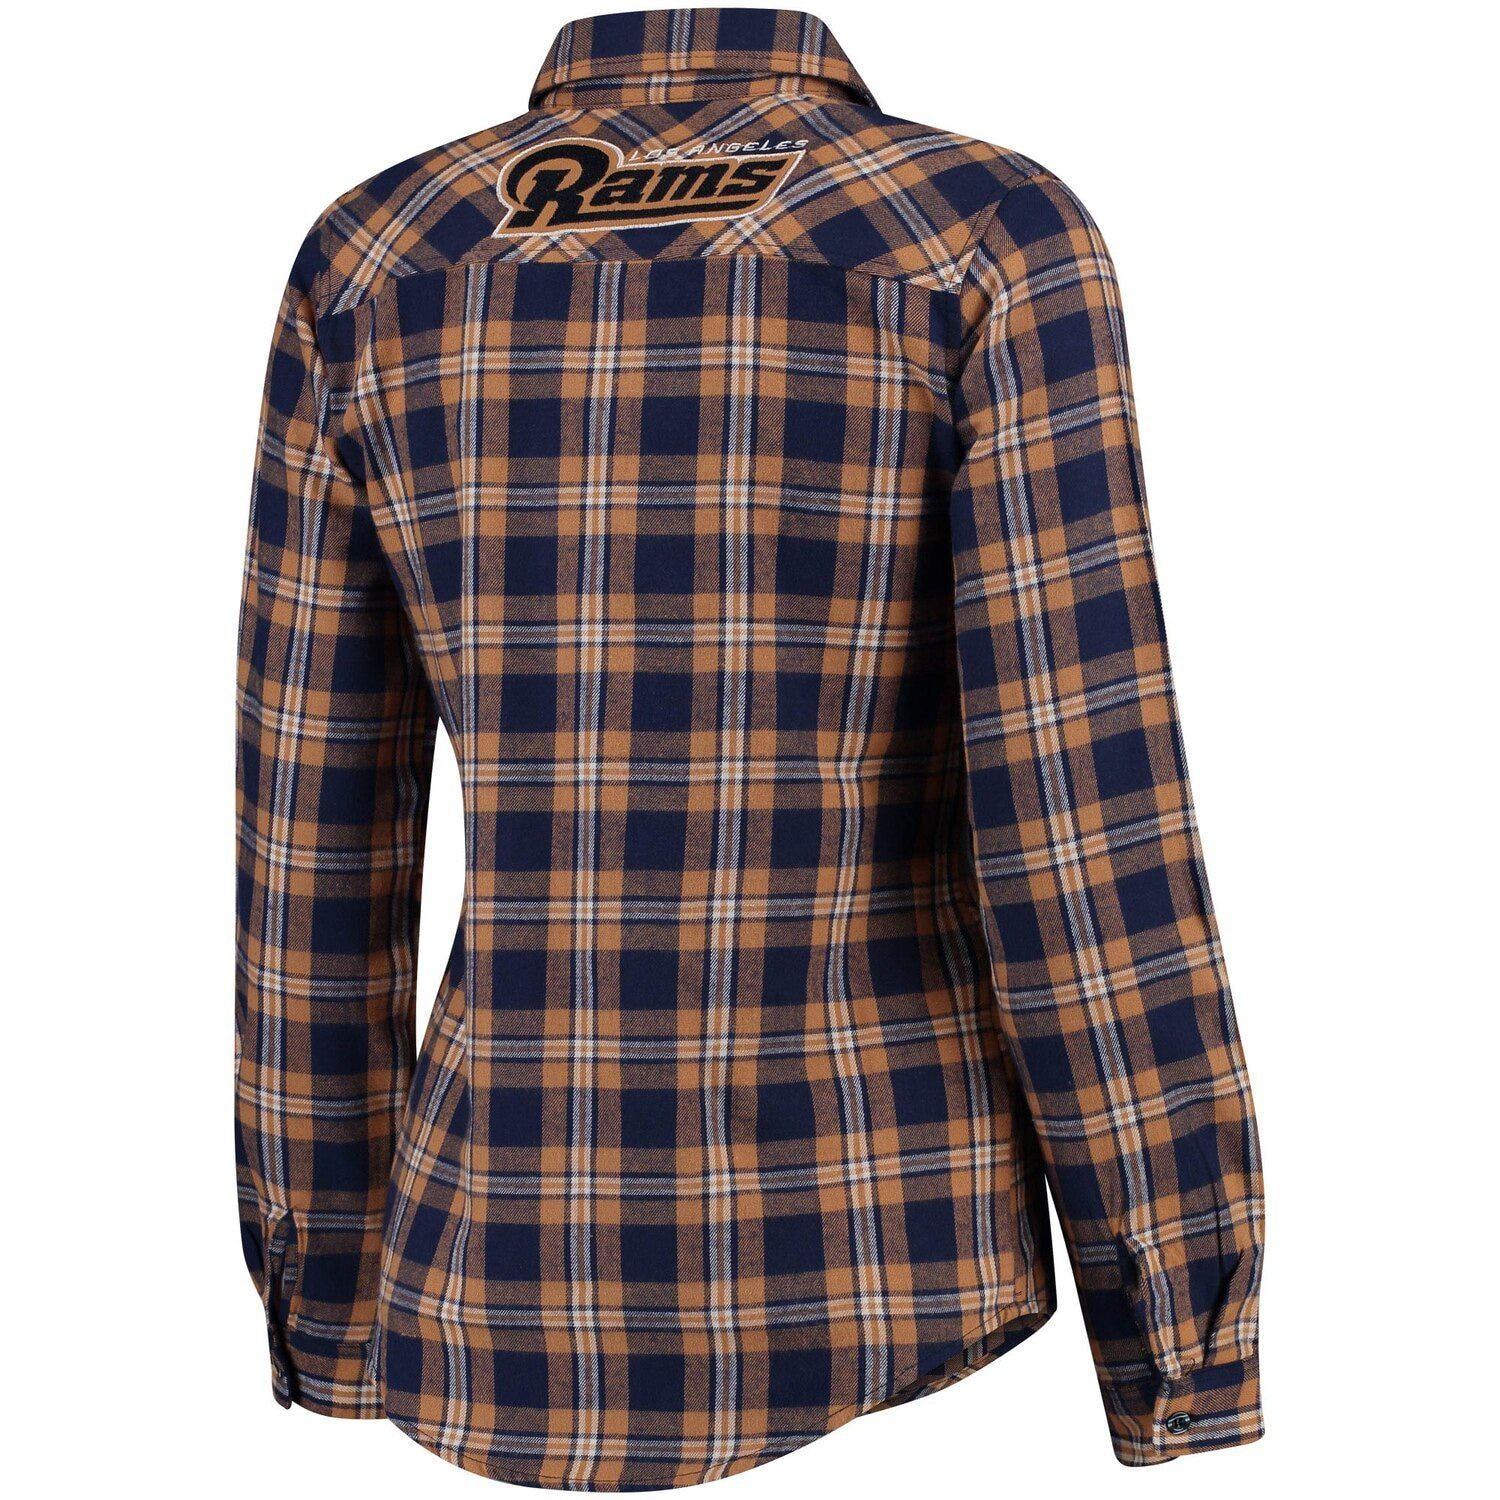 Women S Klew Navy Los Angeles Rams Wordmark Flannel Button Up Long Sleeve Shirt In 2020 Long Sleeve Shirts Shirt Sleeves Women